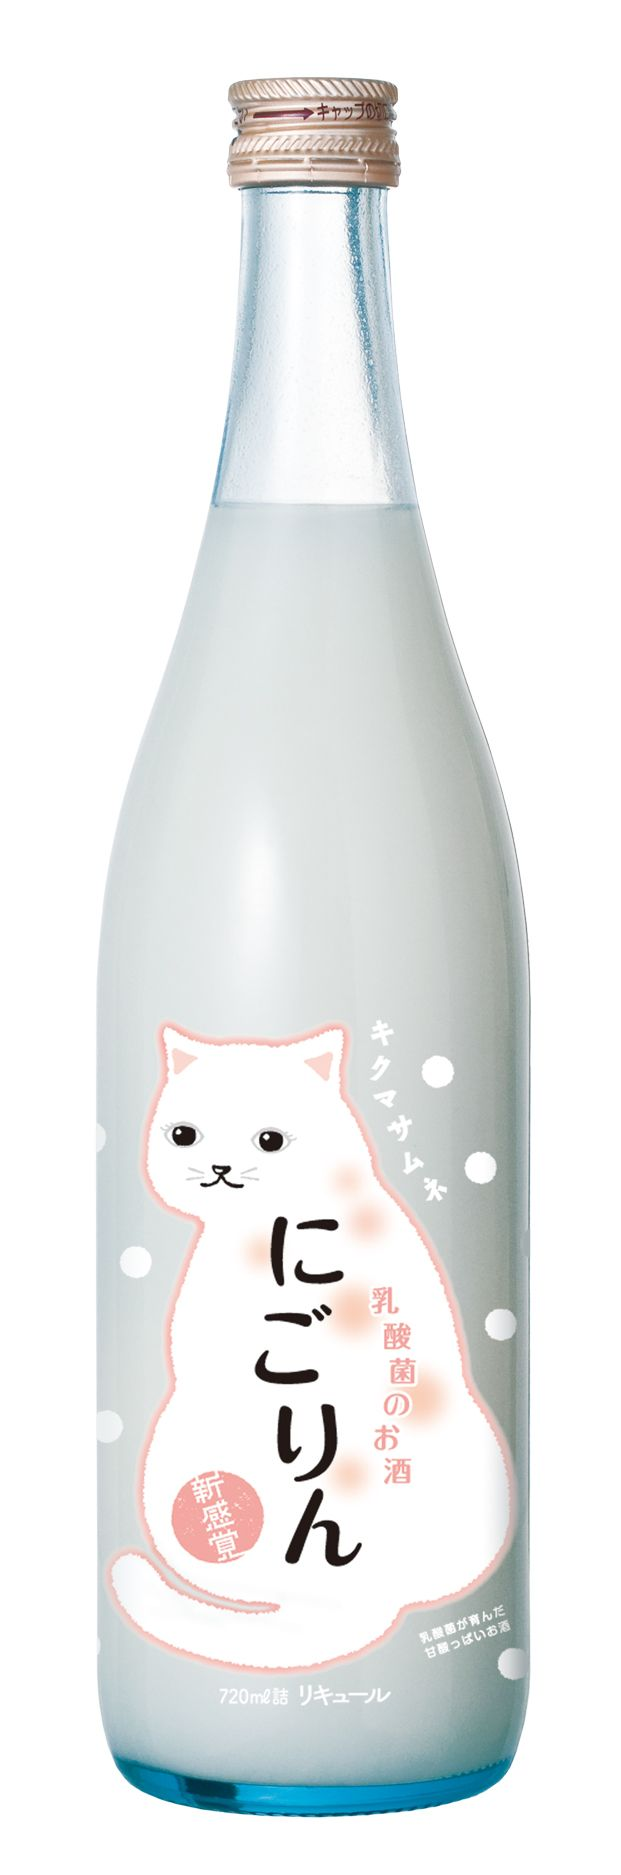 Nigorin 乳酸菌のお酒 にごりんサワー.  They say a cat has nine lives and this packaging sure does too. PD